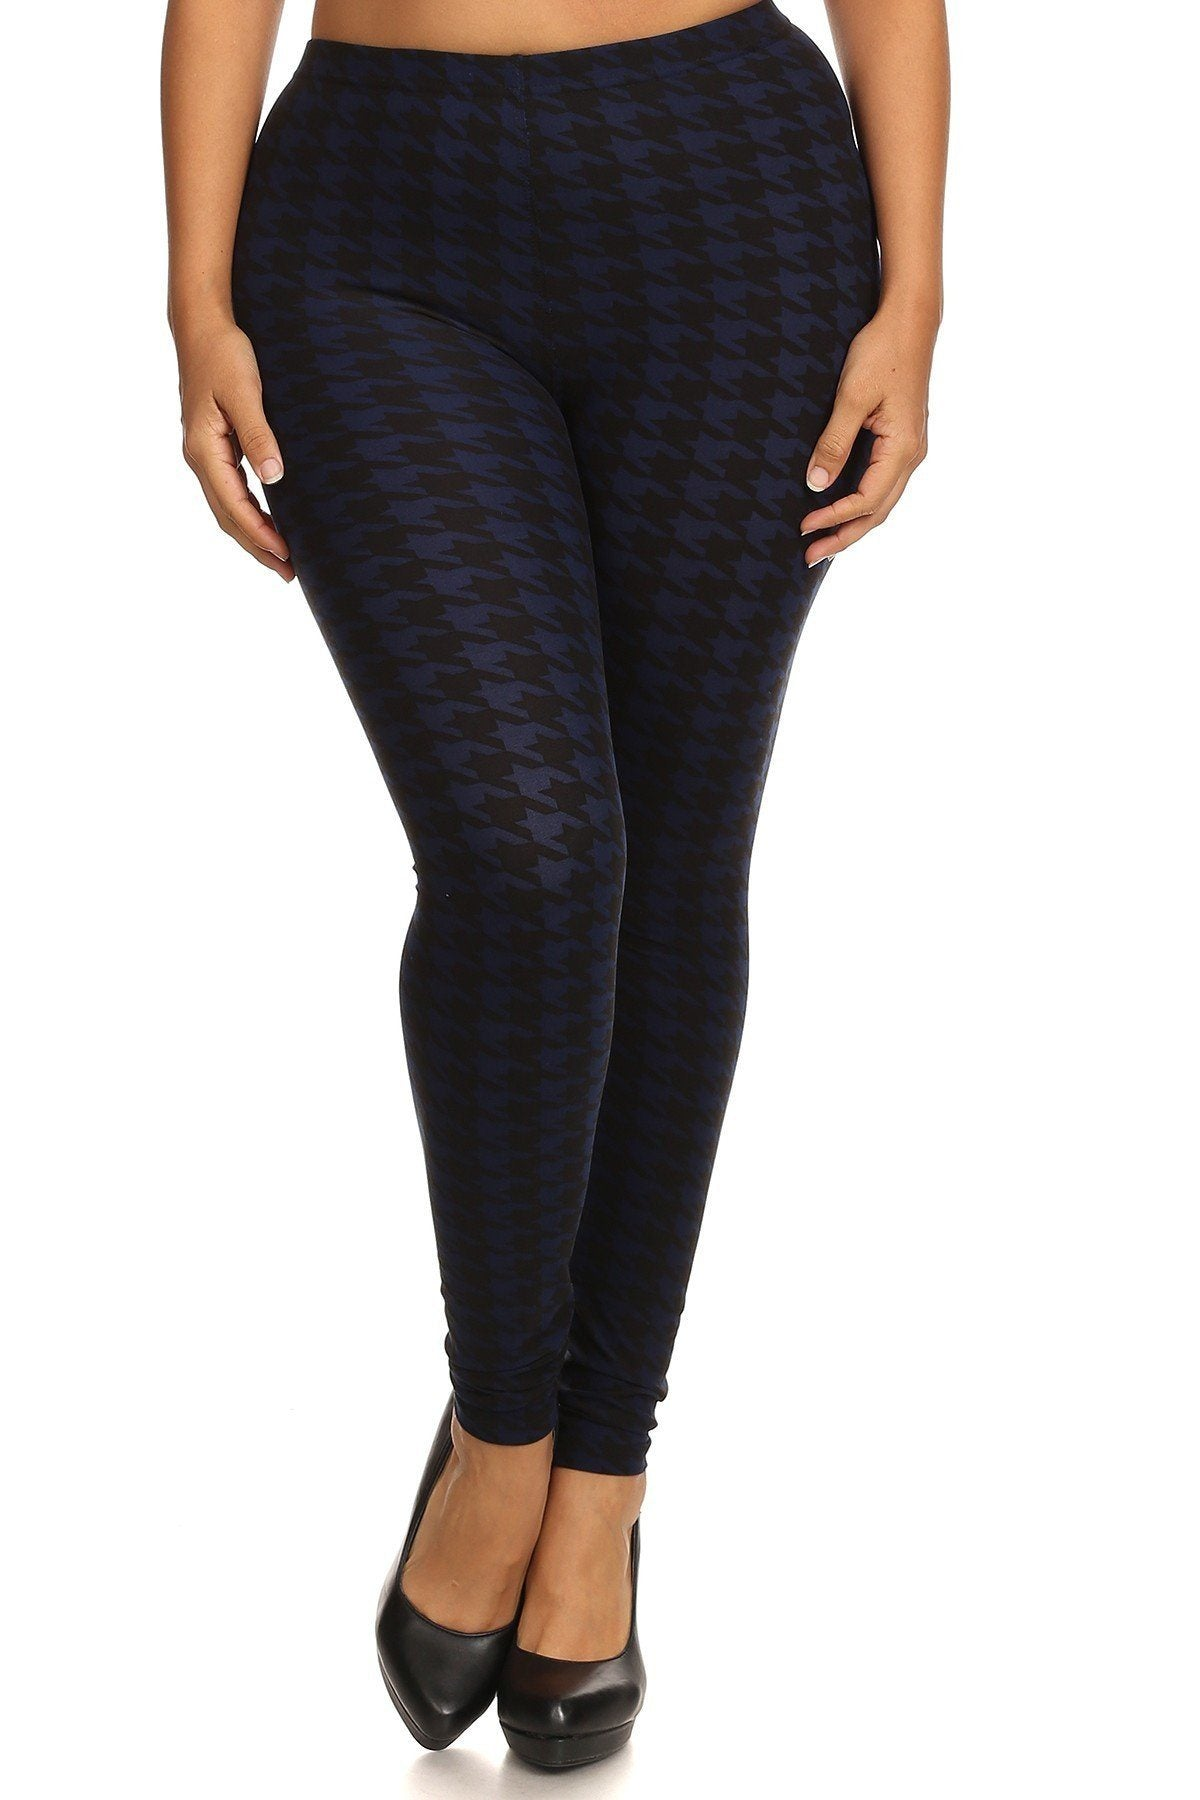 Plus Size Houndstooth Graphic Print, Full Length Leggings In A Slim Fitting Style With A Banded High Waist